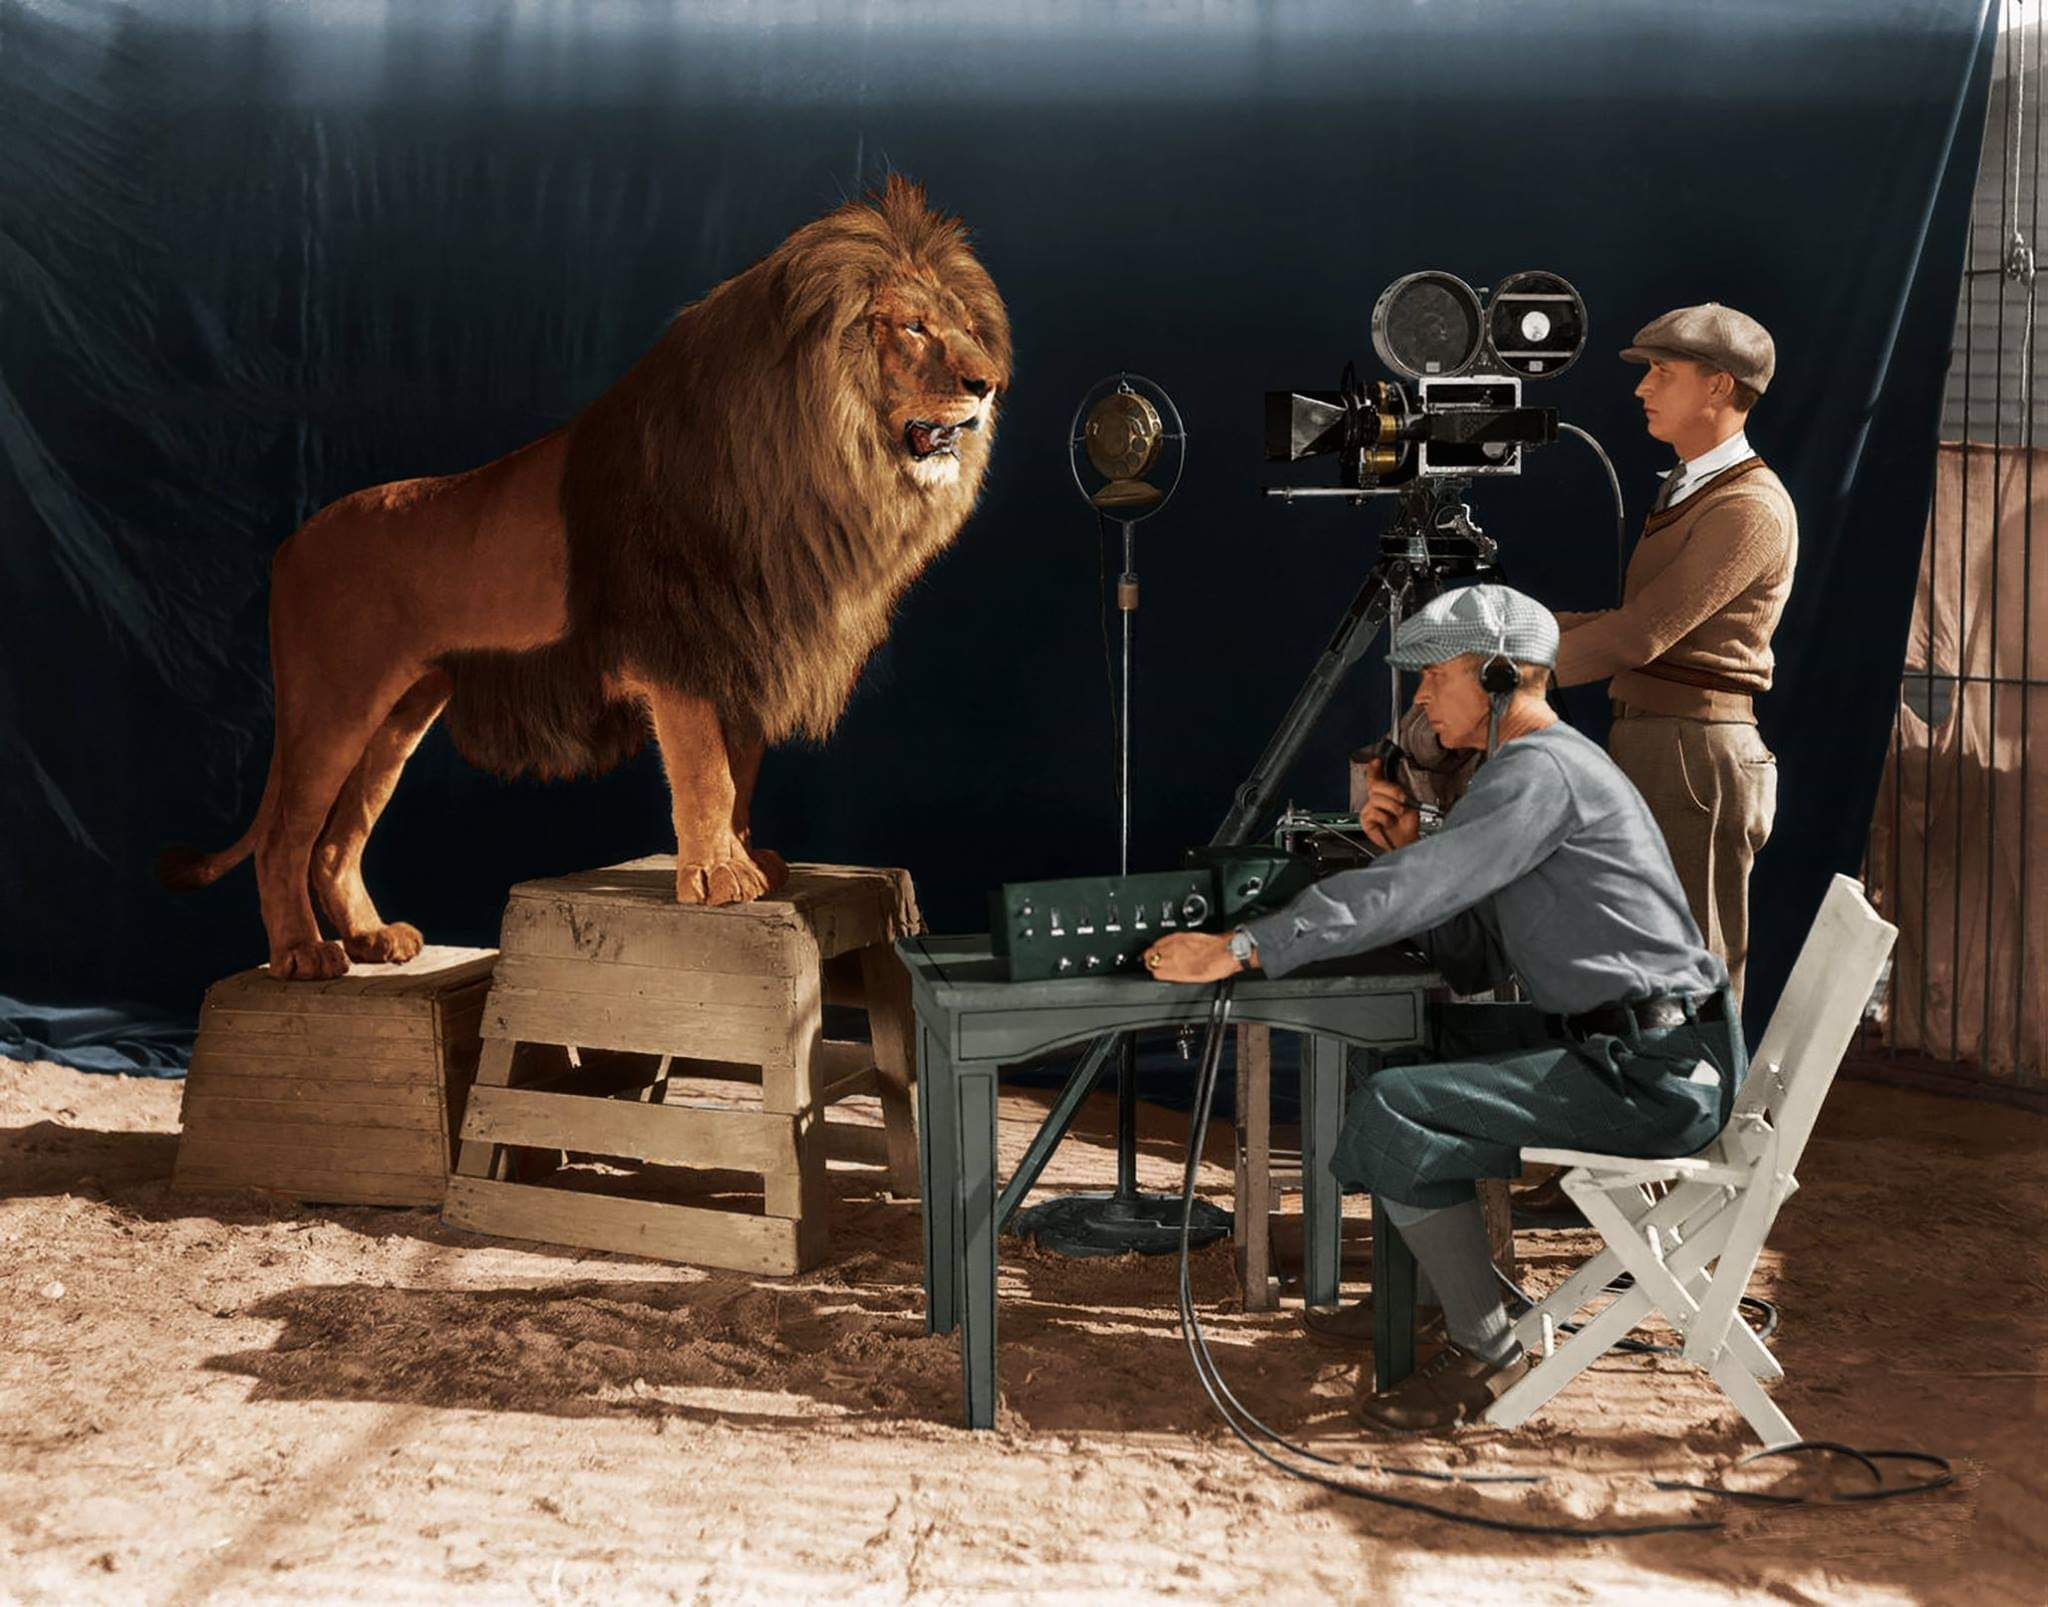 A Cameraman And Sound Technician Record The Roar Of Leo The Lion In